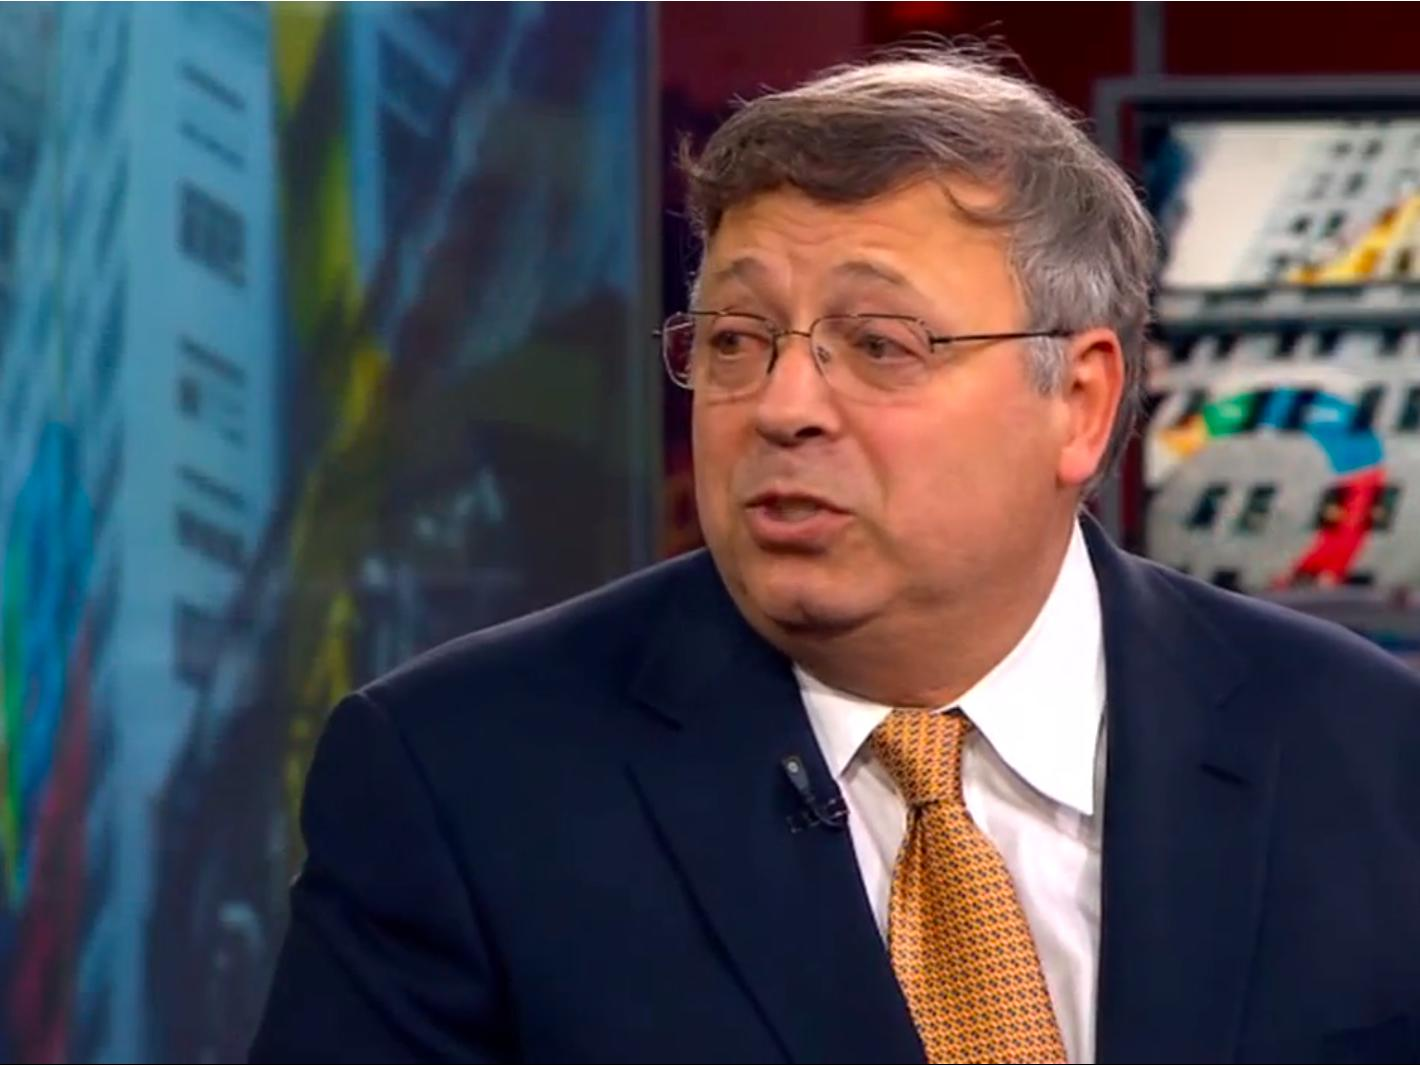 TOM DEMARK: The stock market will bottom in the next 2 or 3 days